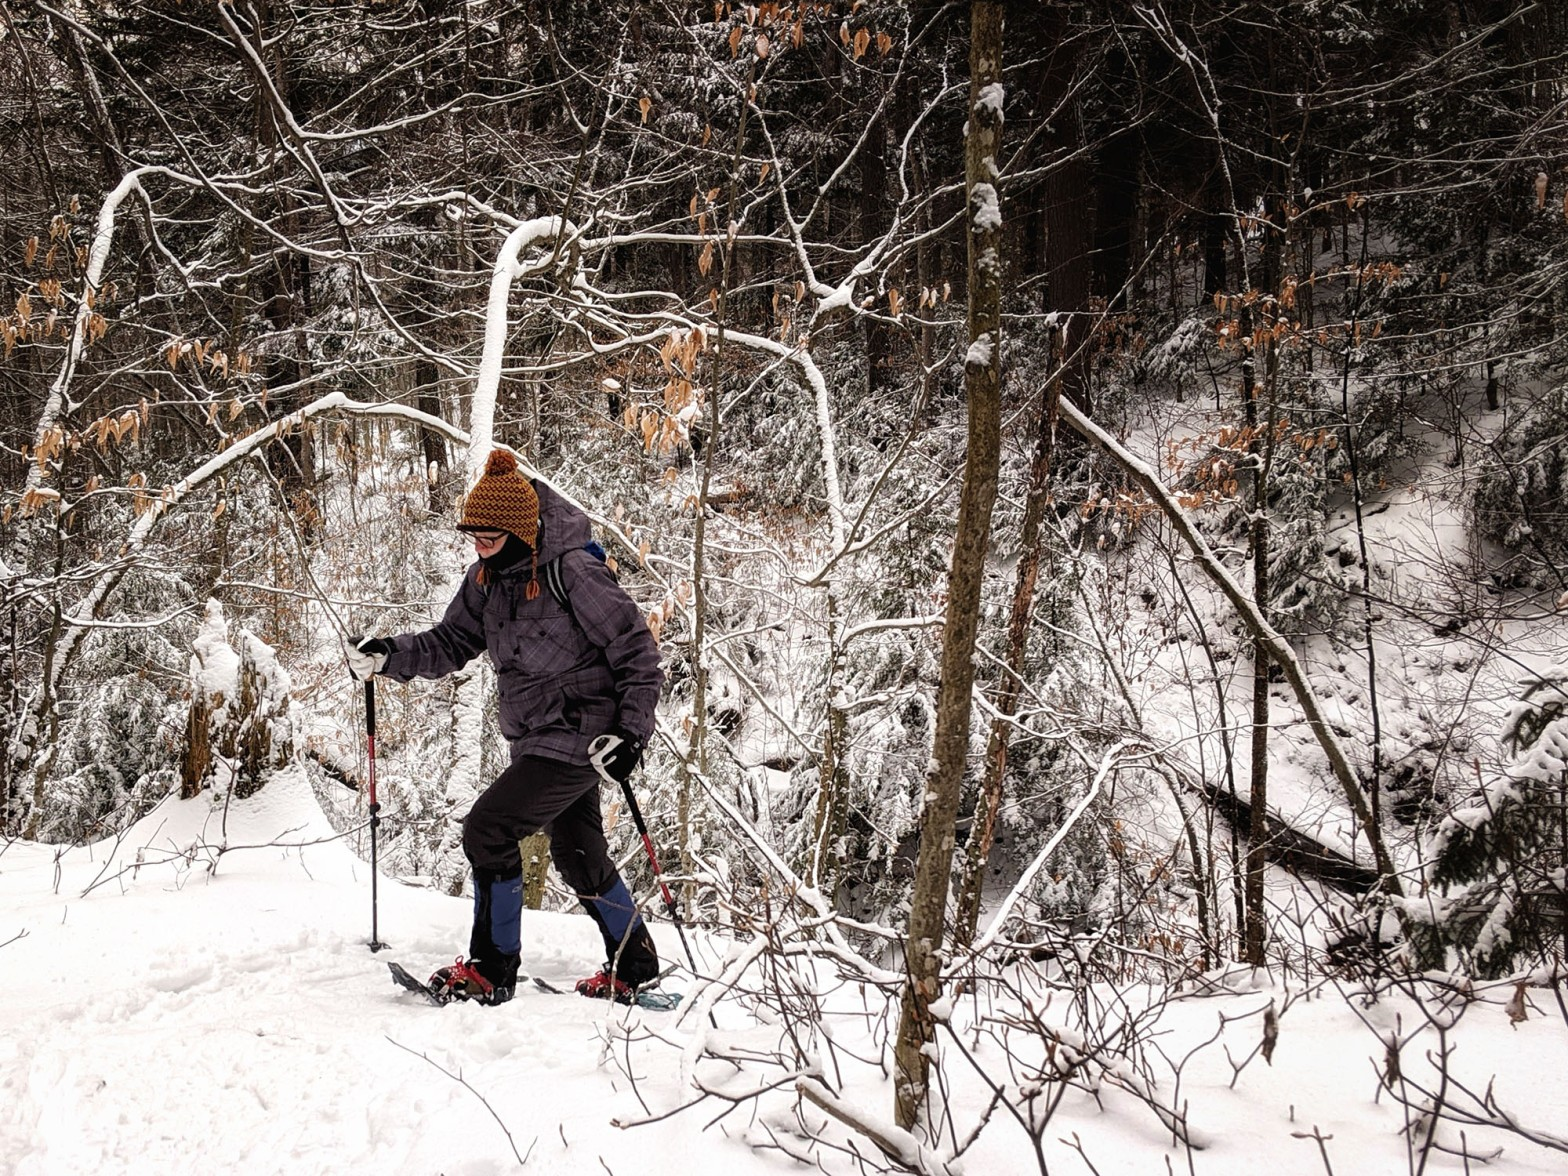 Snowshoeing through the woods